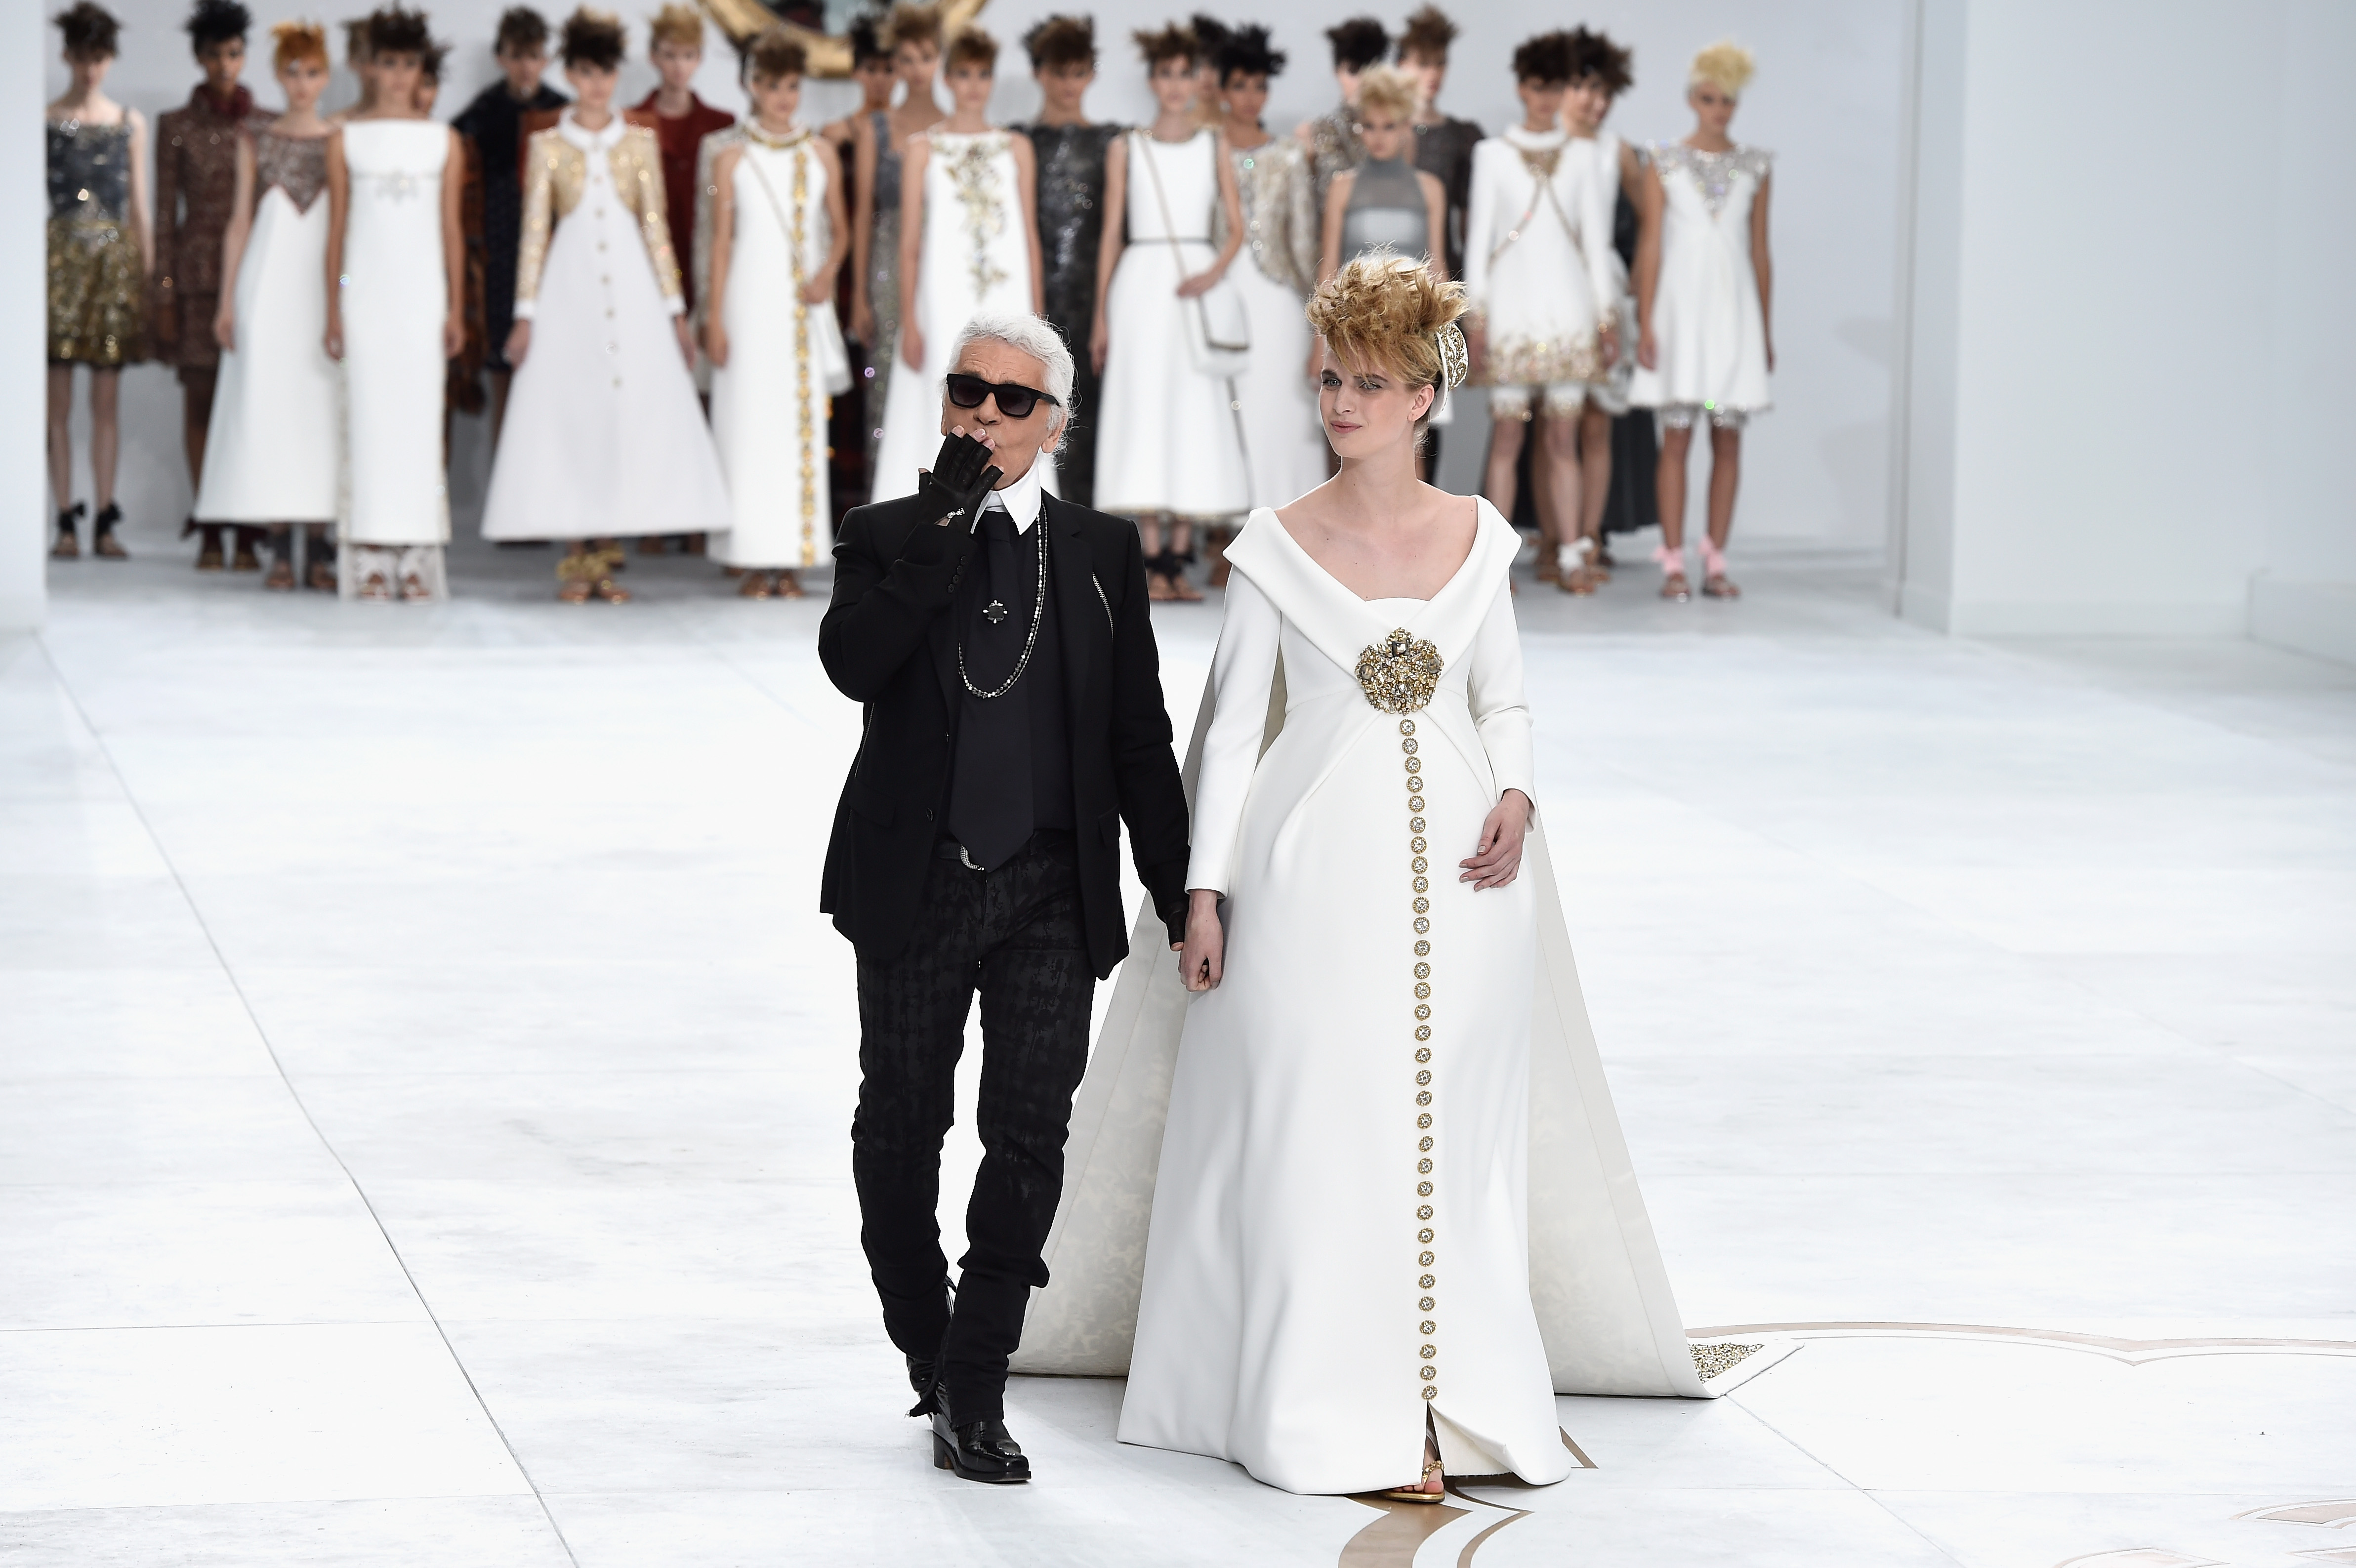 Karl Lagerfeld at Chanel's couture show in Paris, July 2014. Photo: Getty.